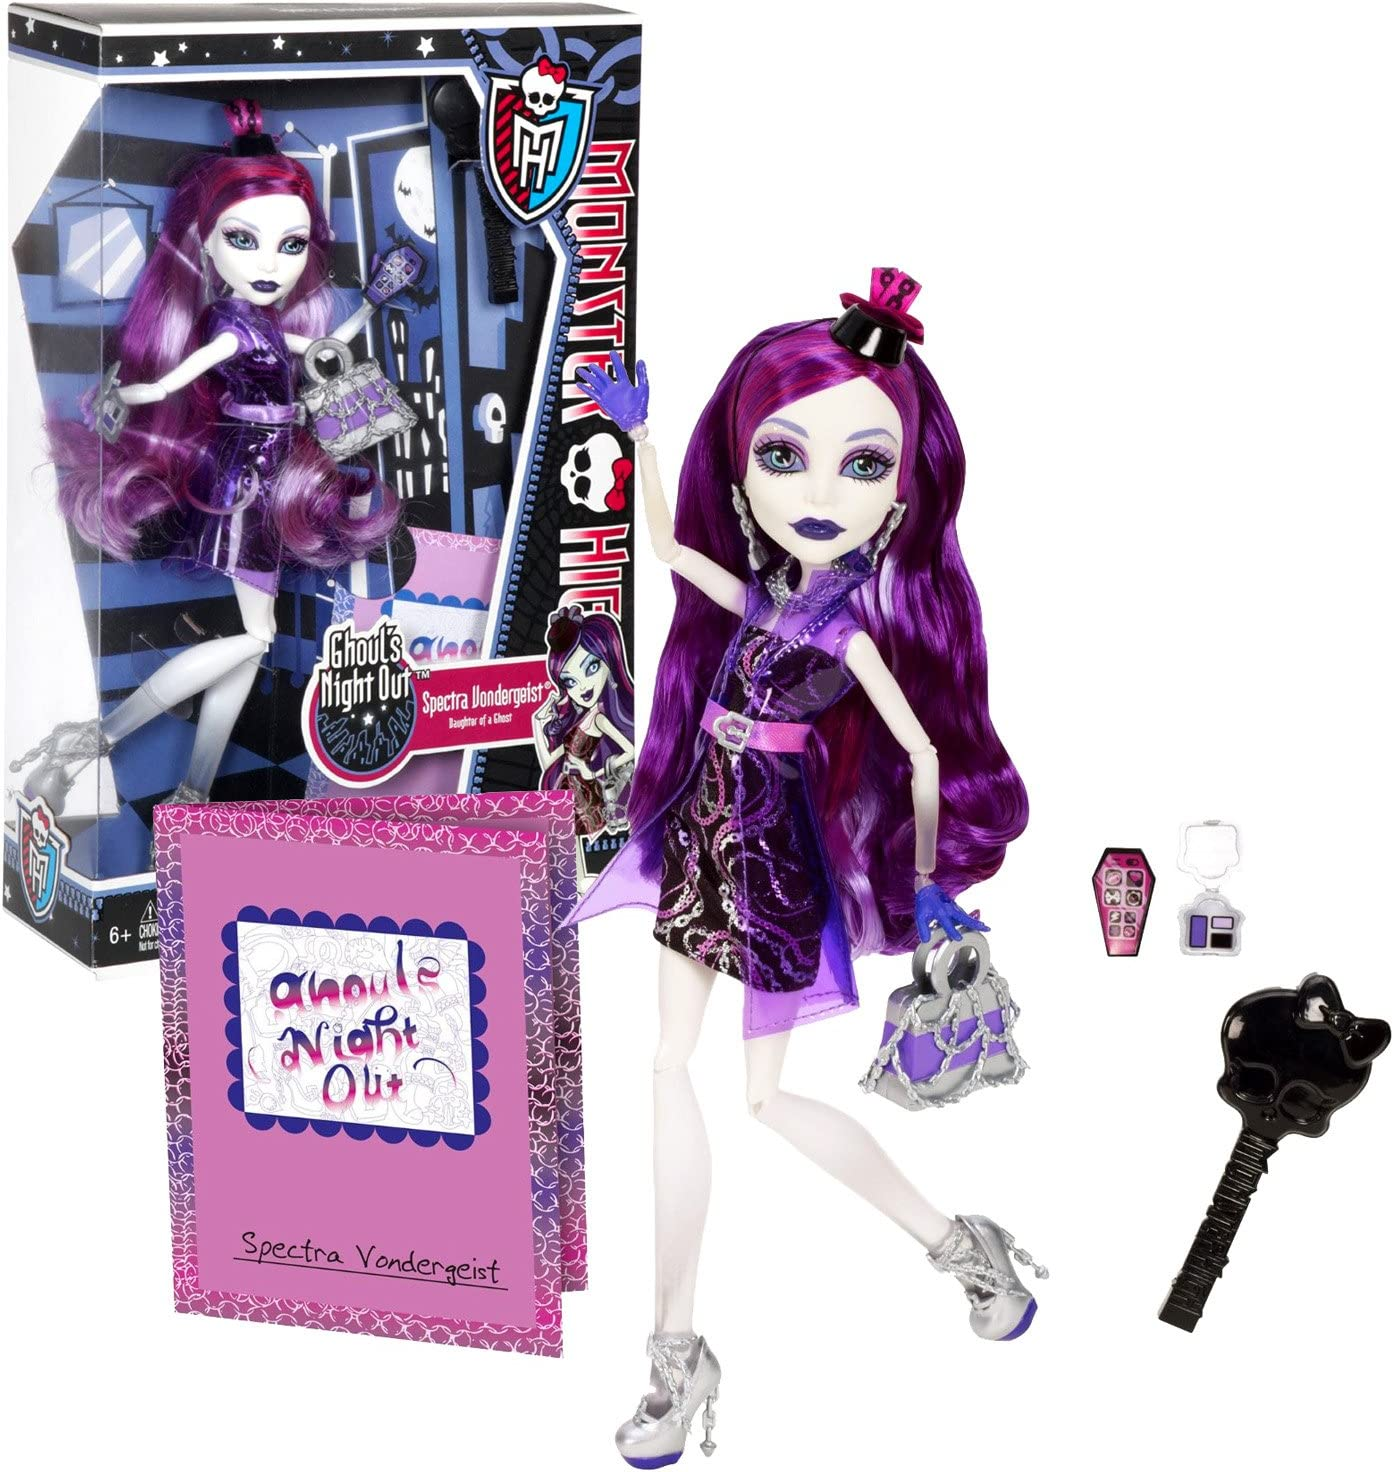 Amazon Com Monster High Mattel Year 2012 Ghoul S Night Out Series 11 Inch Doll Set Spectra Vondergeist Daughter Of A Ghost With Smartphone Cosmetic Accessories Purse Hairbrush And Doll Stand Toys Games